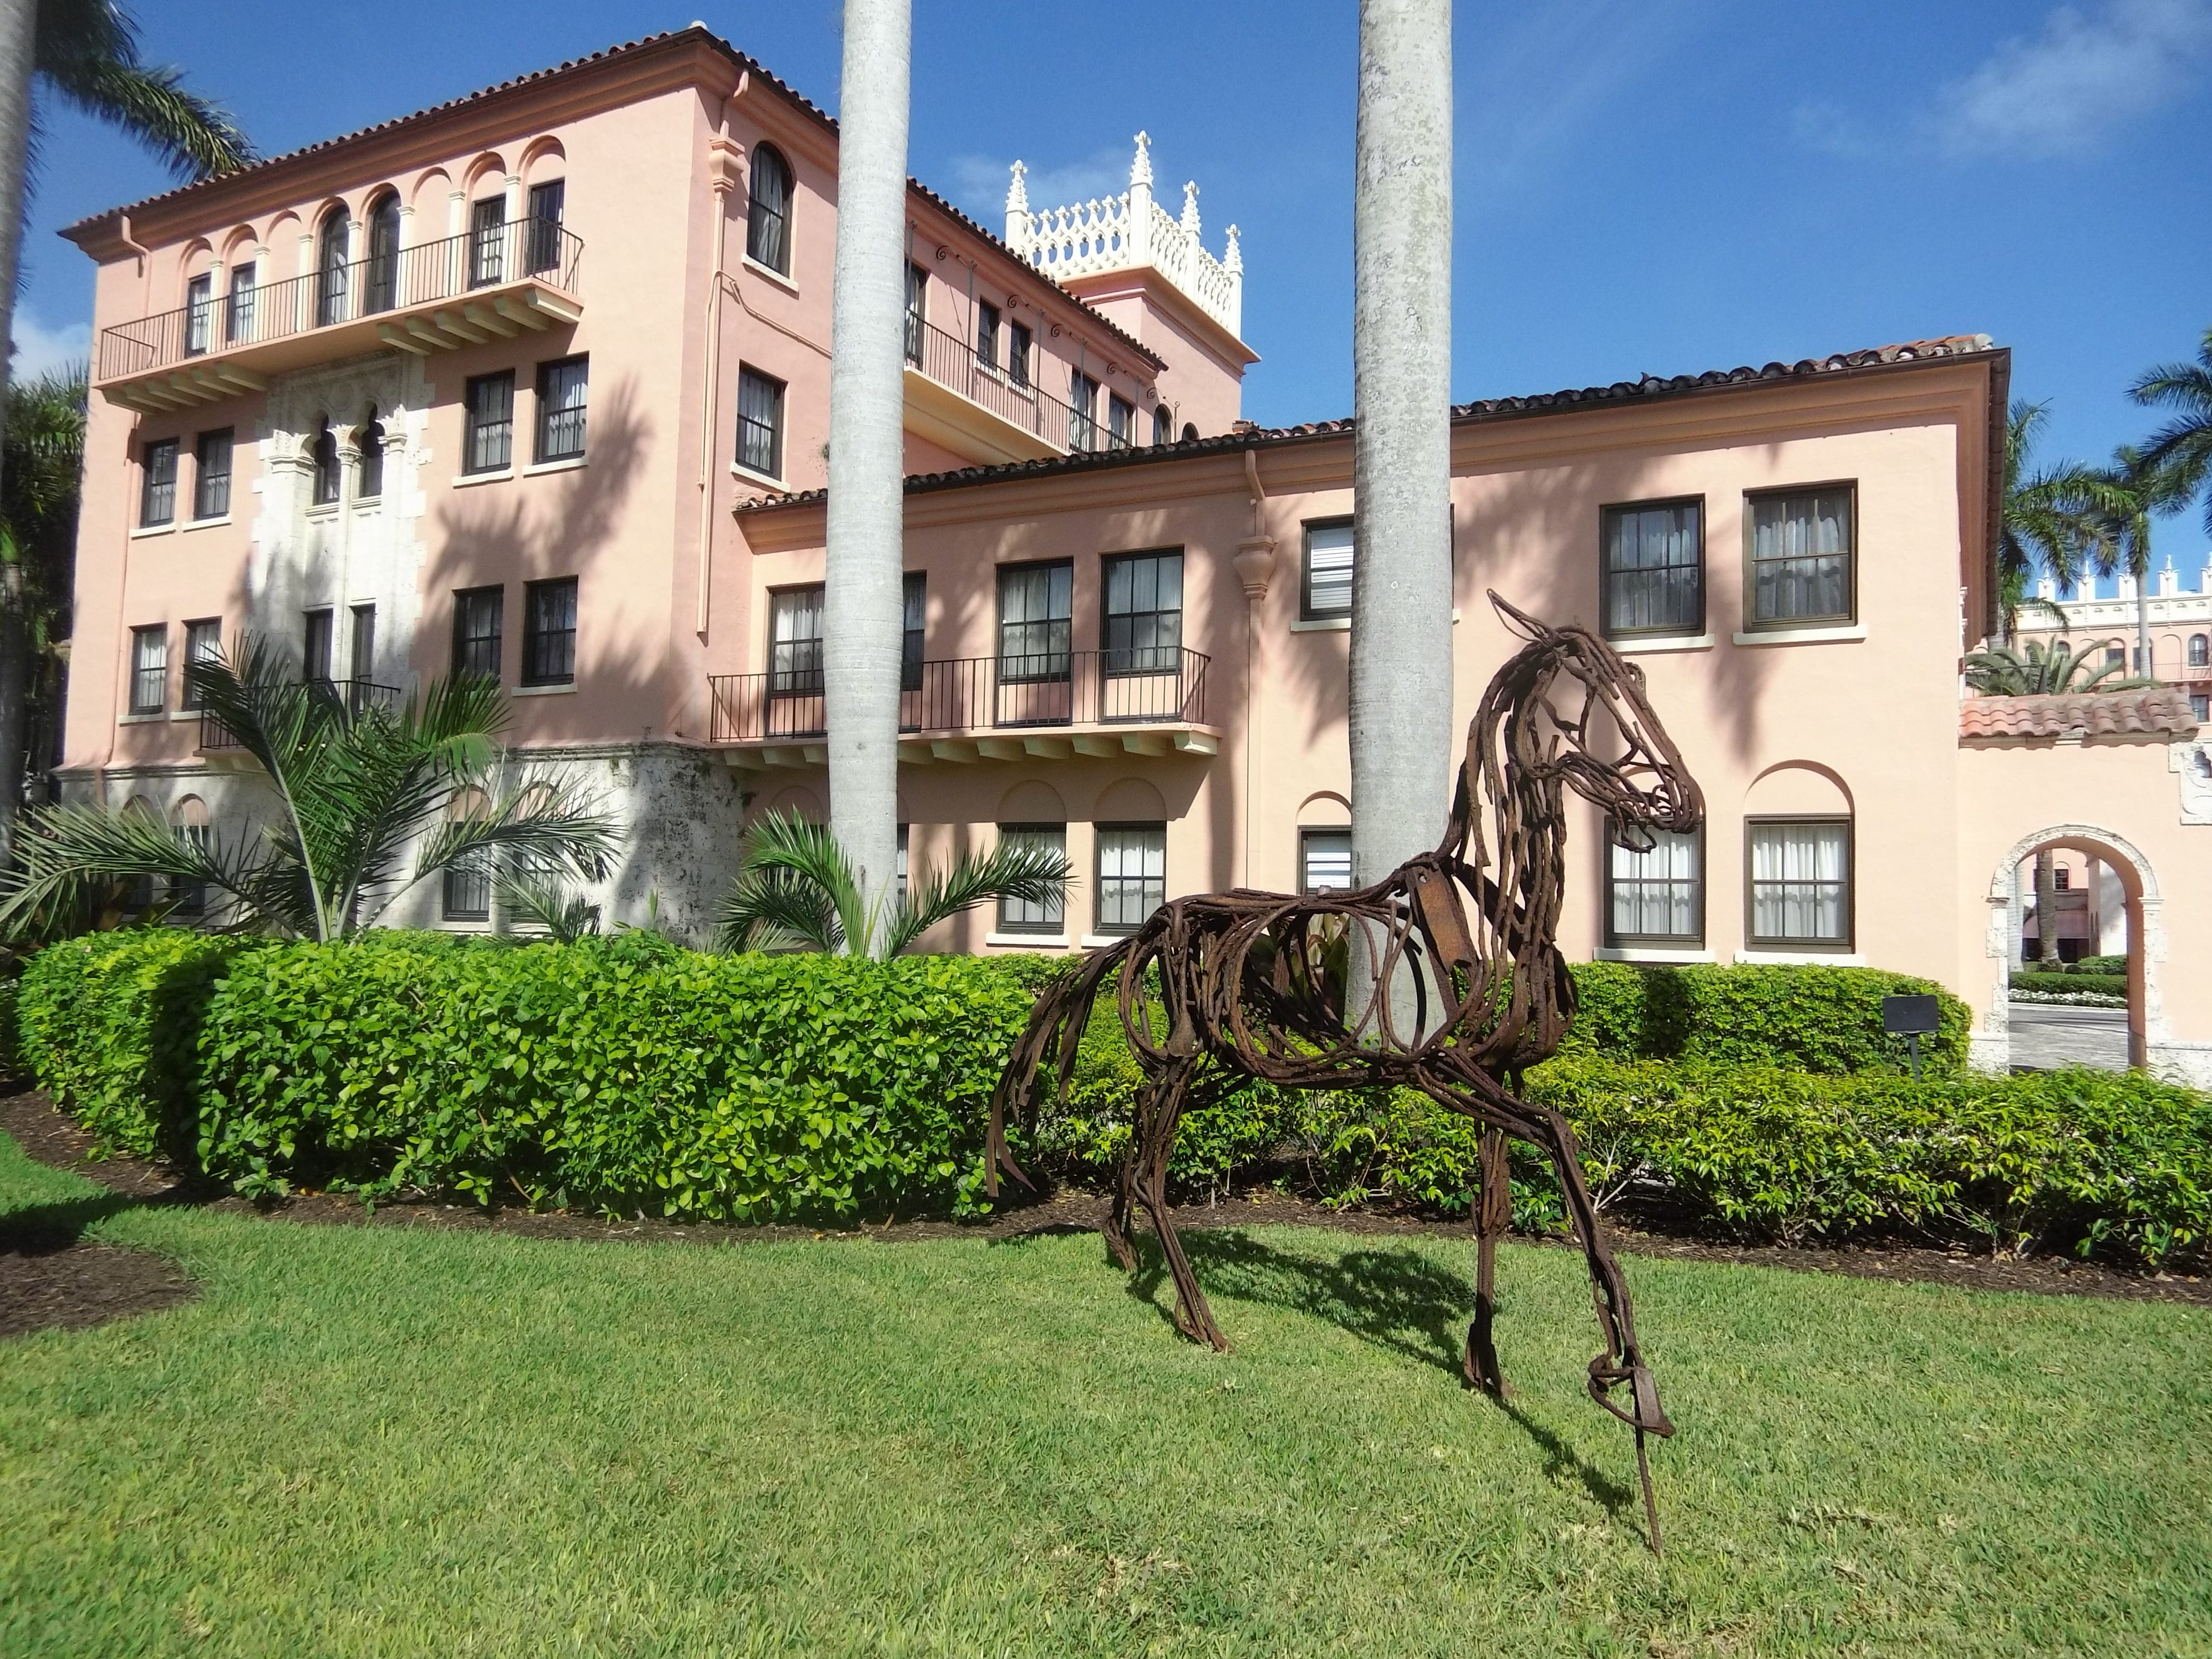 A sculpture, curated by Sponder Gallery, sits in front of the original Cloister Inn at Boca Raton Resort & Club.